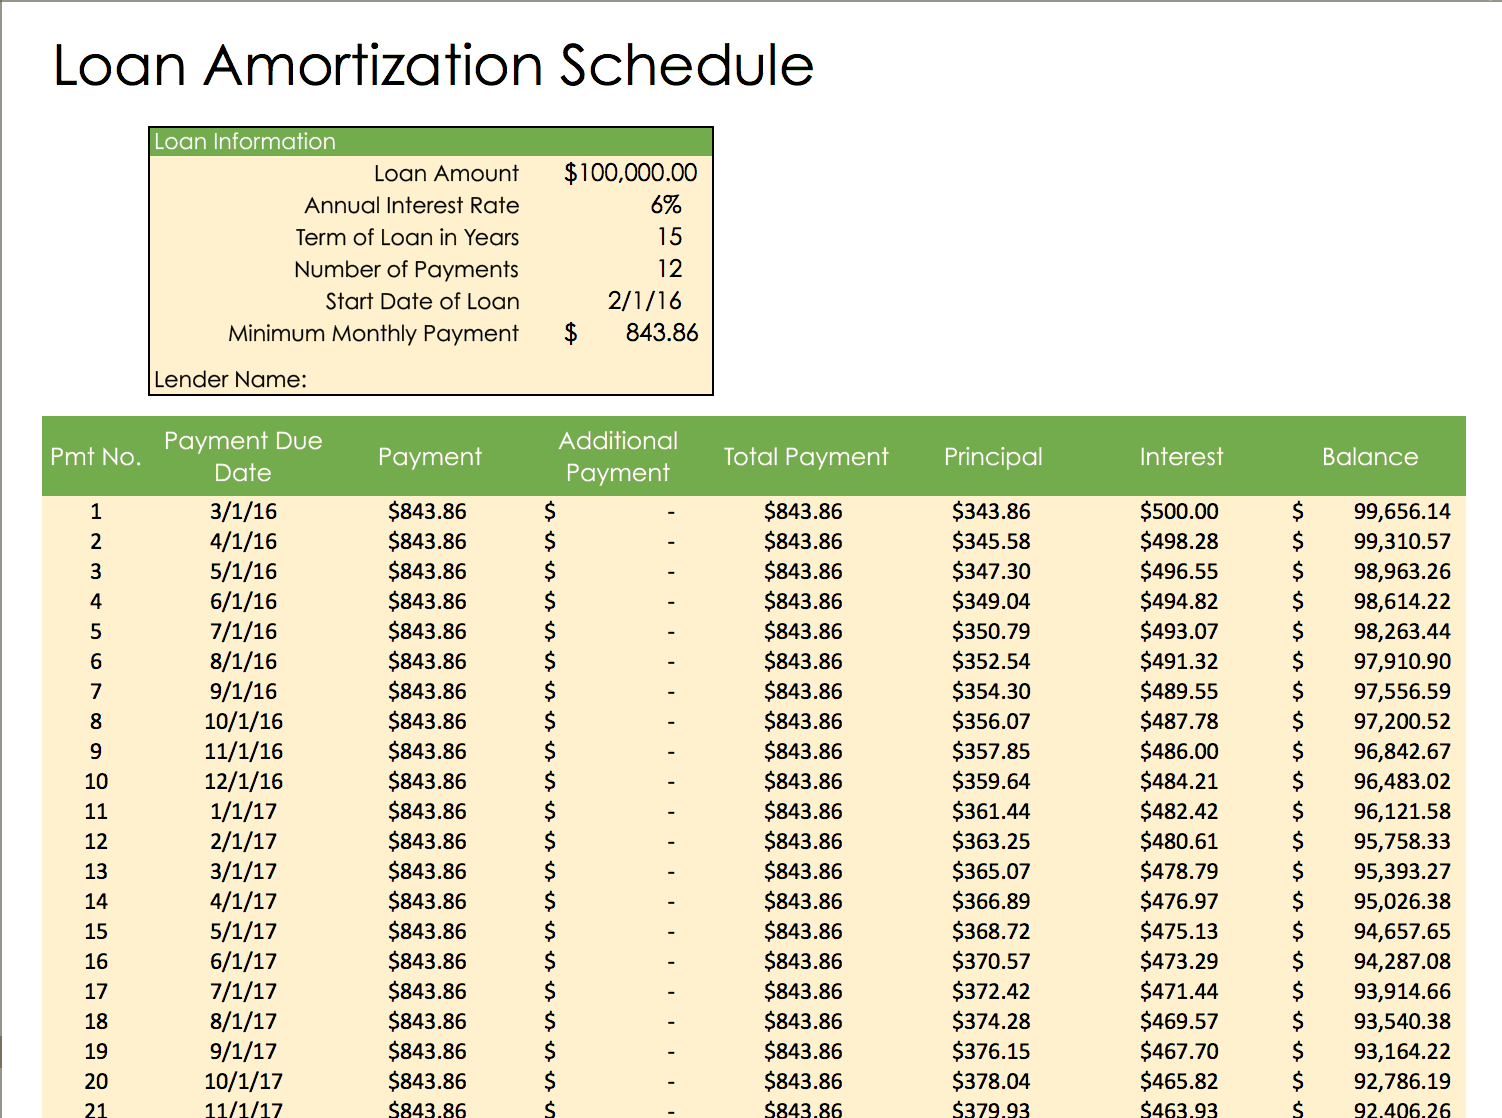 Free Weekly Schedule Templates For Excel Smartsheet – Loan Amortization Schedule Excel